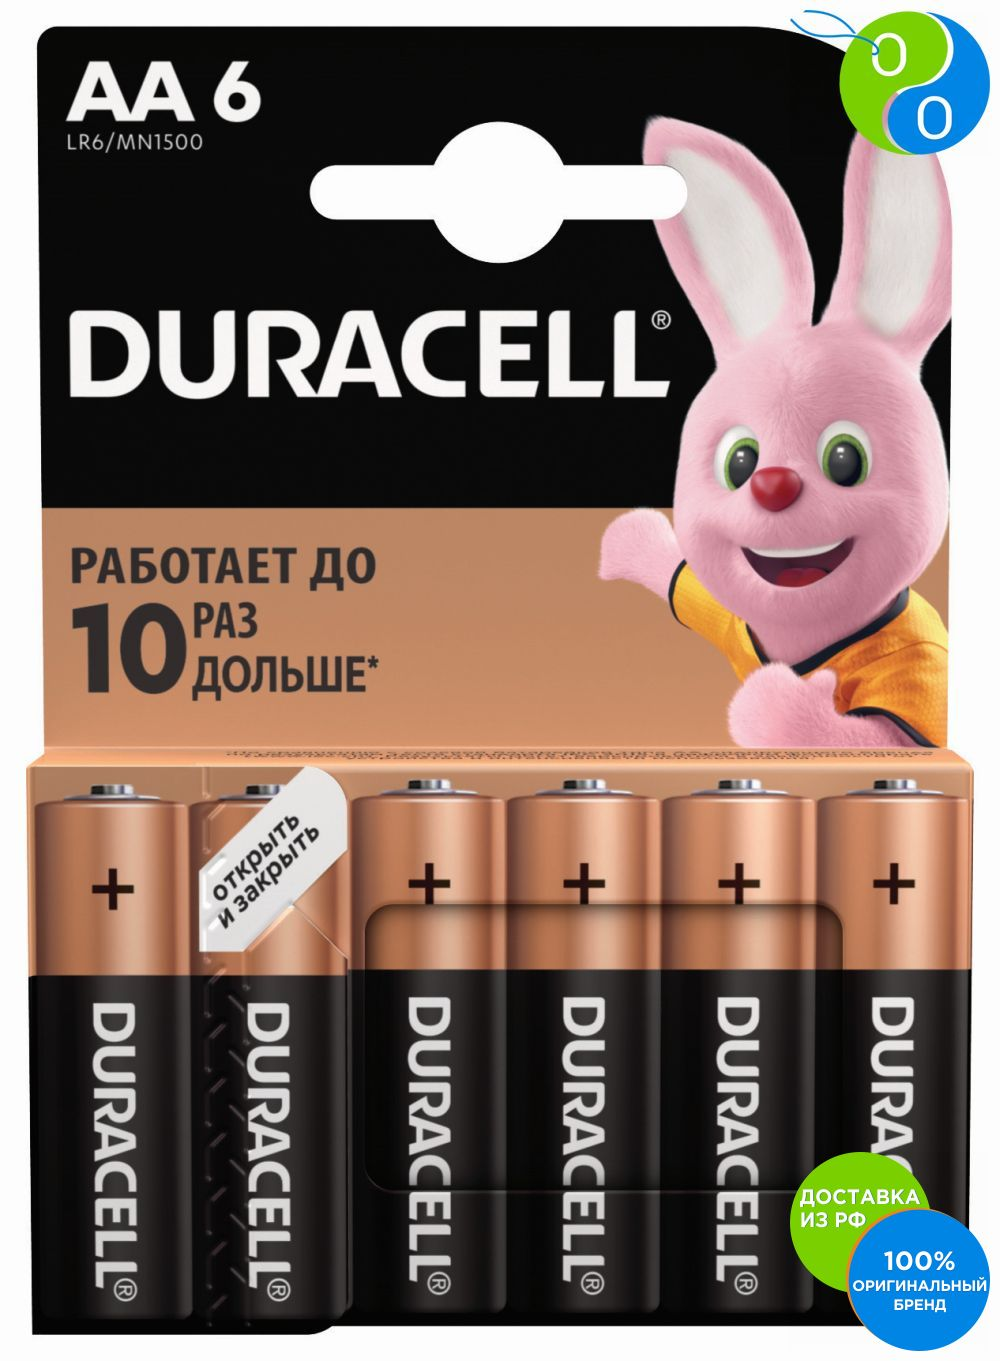 DURACELL Basic AA Alkaline Batteries 1.5V LR6 6pc,Duracel, Durasell, Durasel, Dyracell, Dyracel, Dyrasell, Durasel, Duracell Alkaline batteries size AA, 6 pcs. in the package description Duracell offers a wide range of